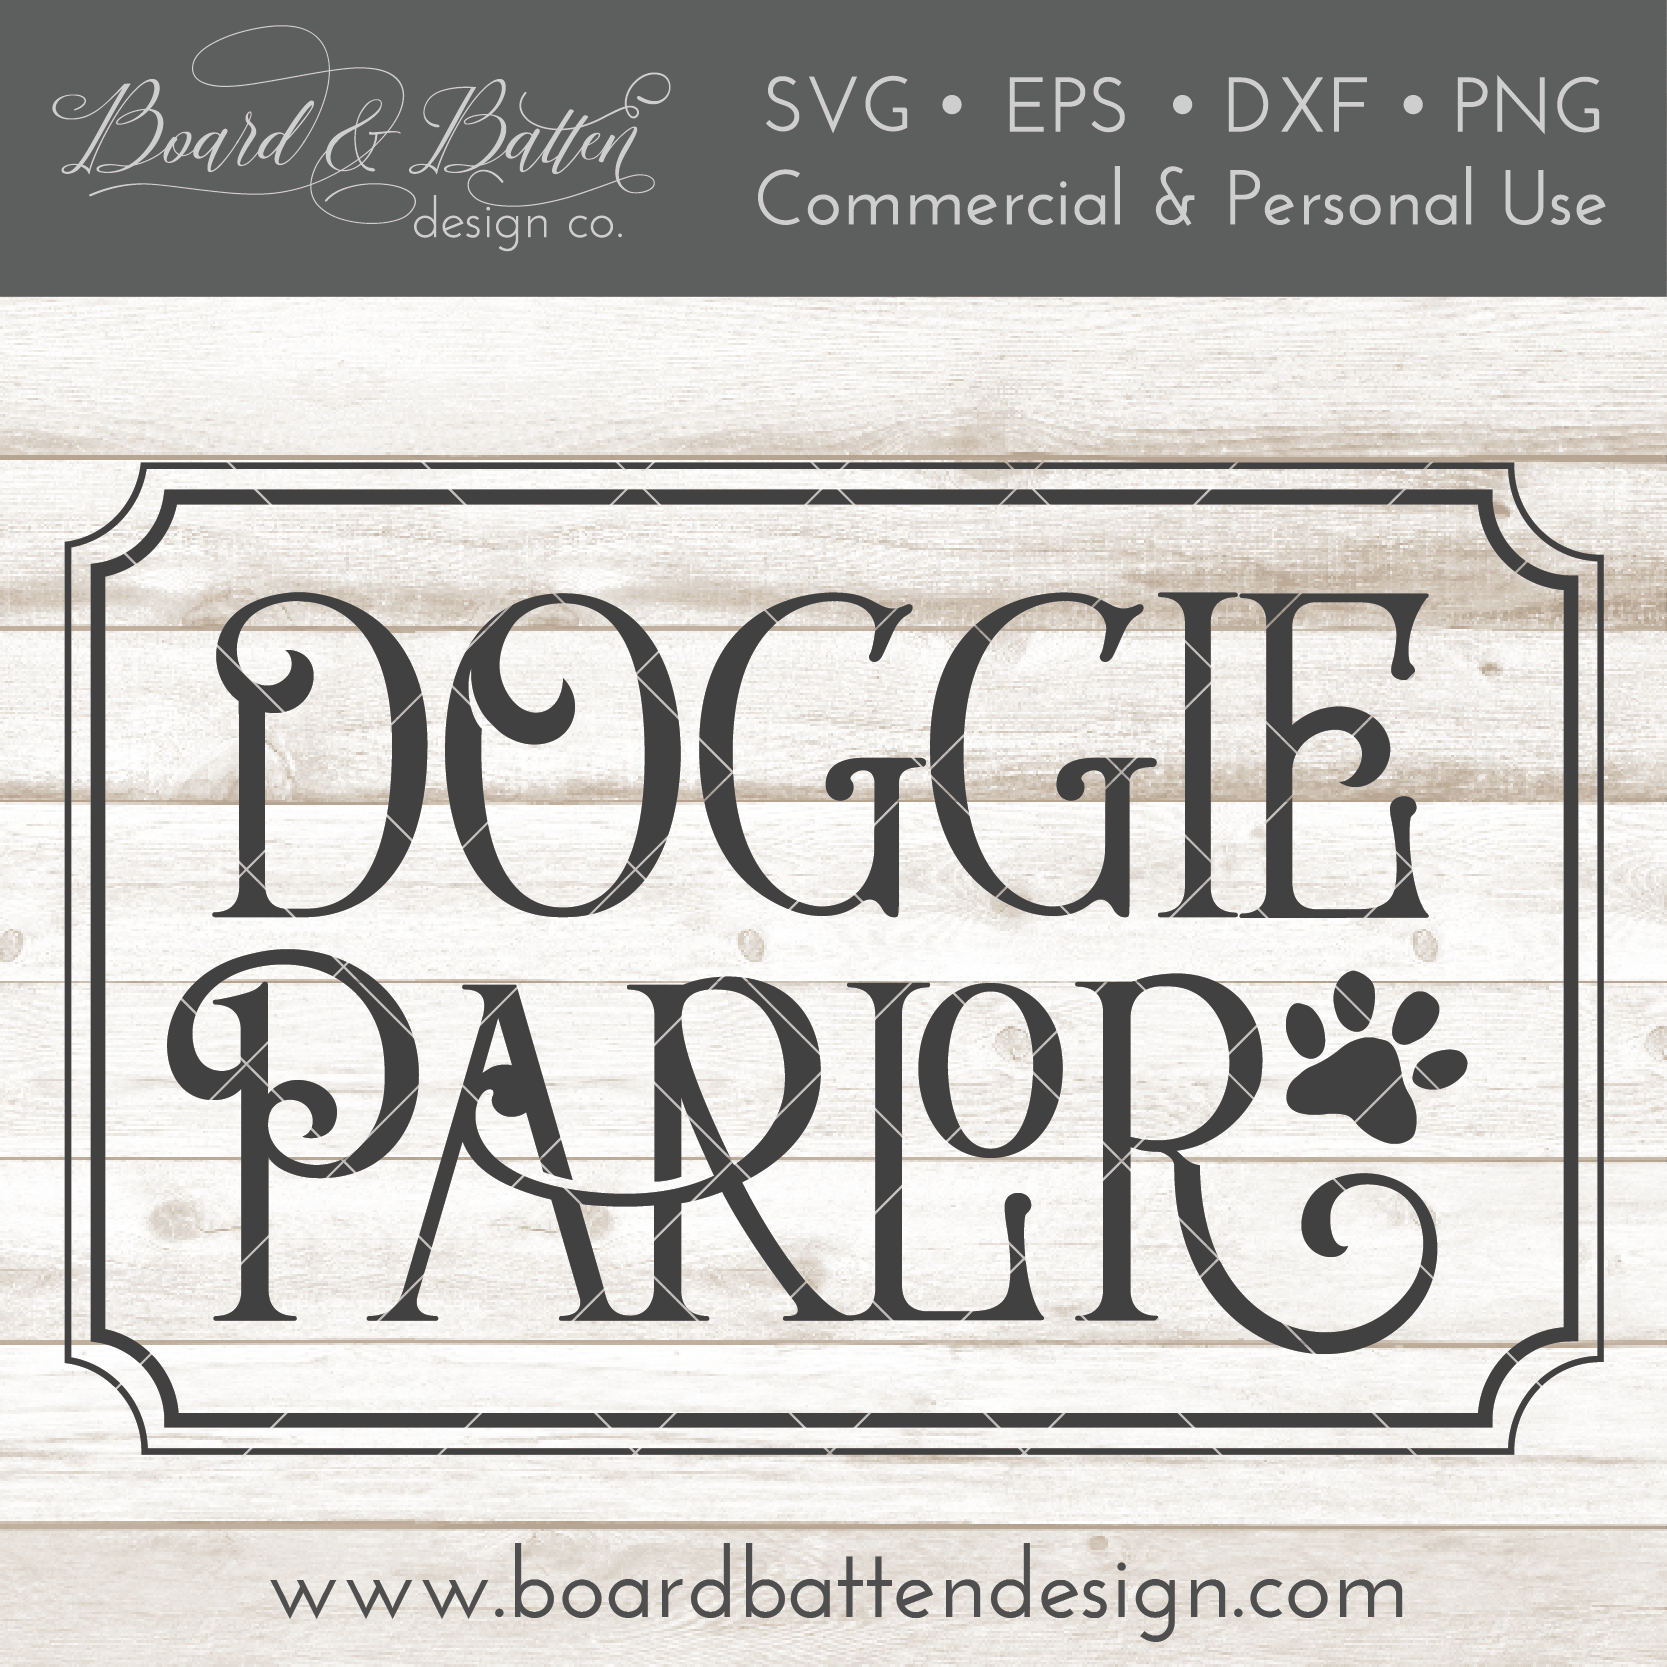 Farmhouse Doggie Parlor SVG File - Commercial Use SVG Files